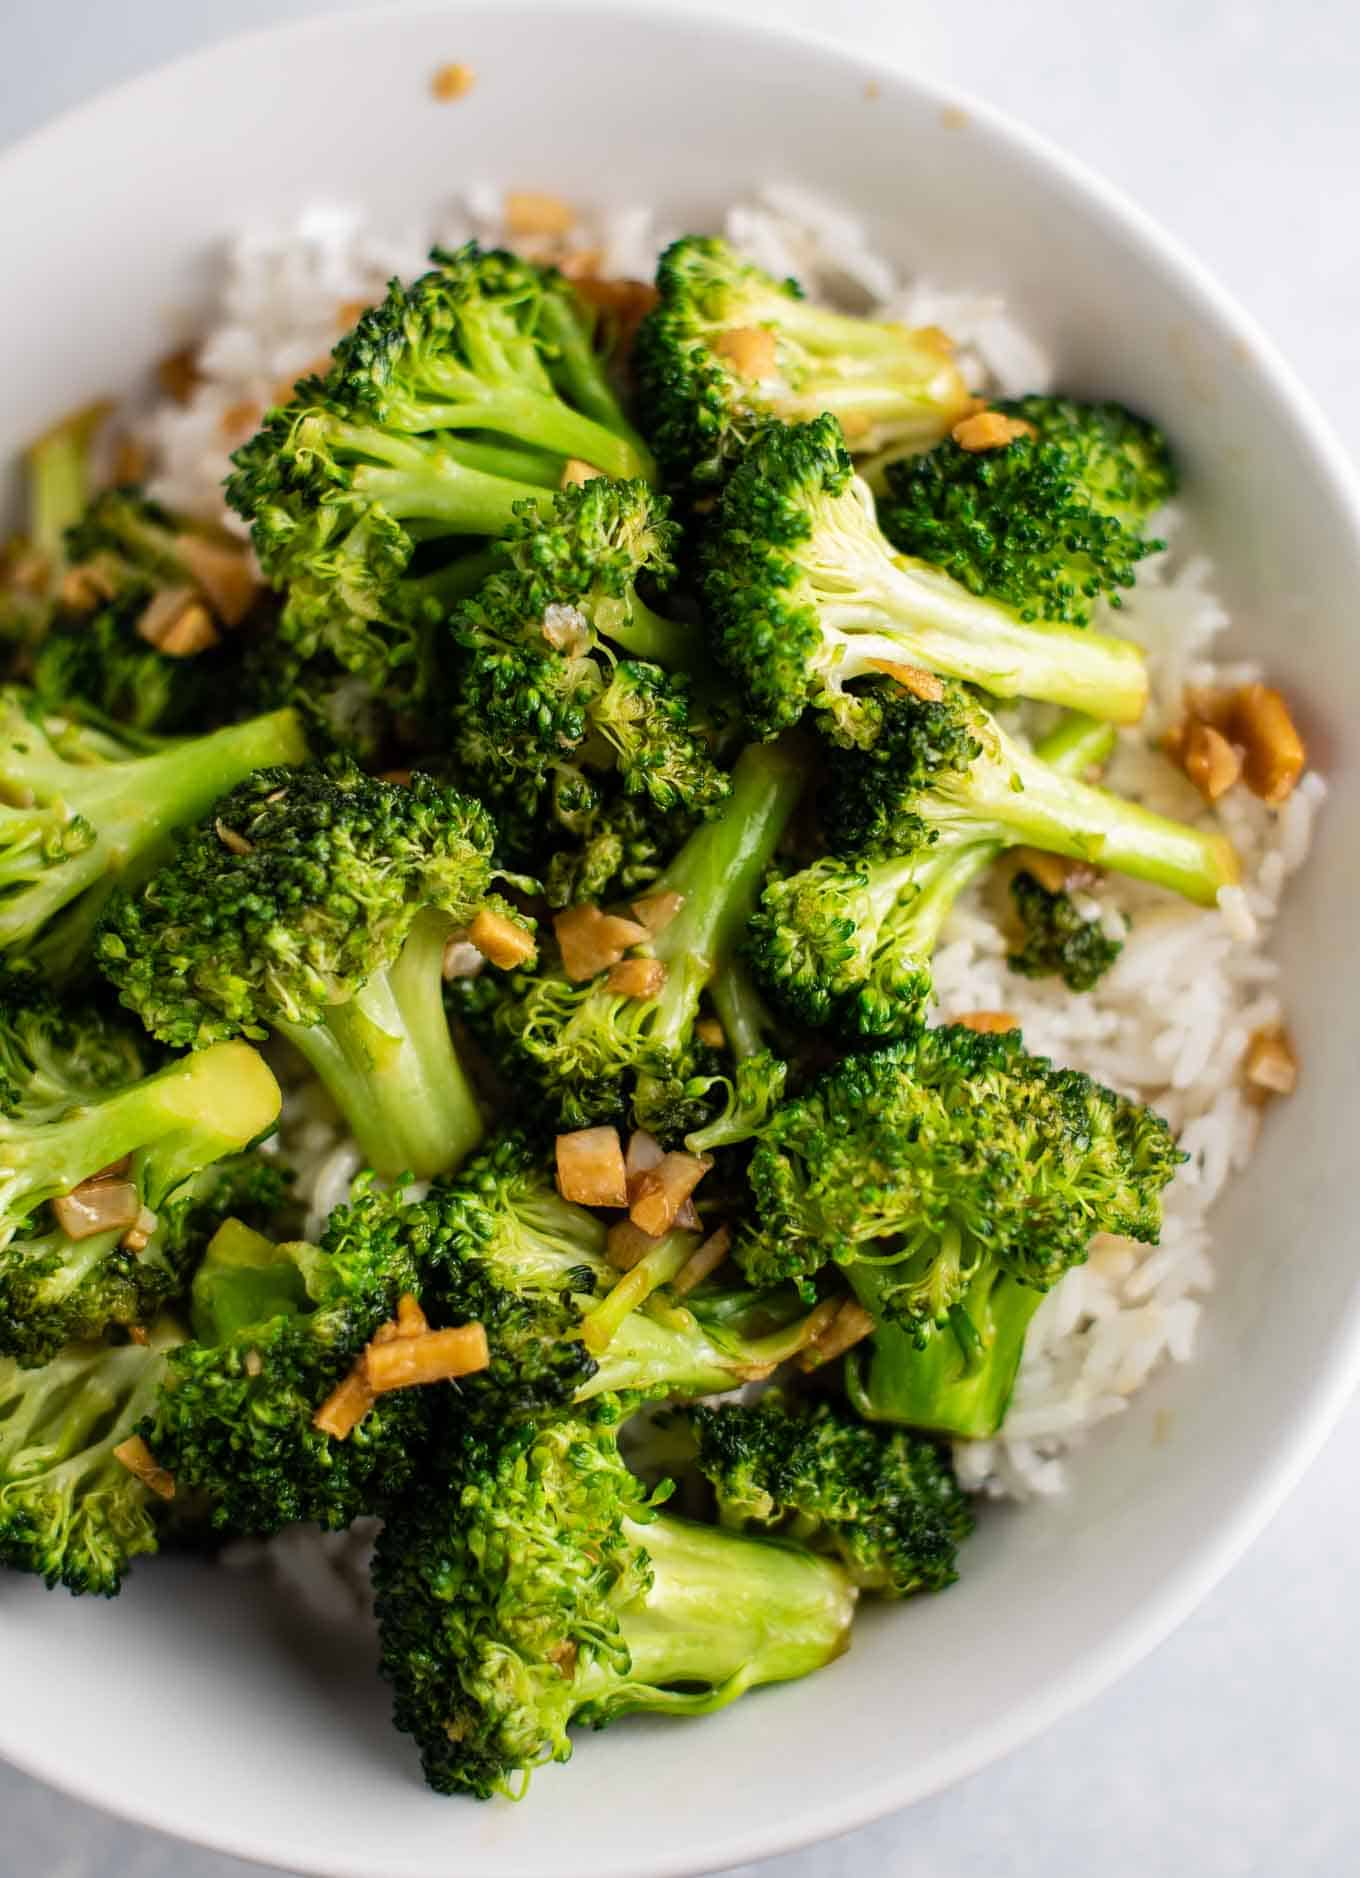 broccoli stir fry with white rice in a white bowl